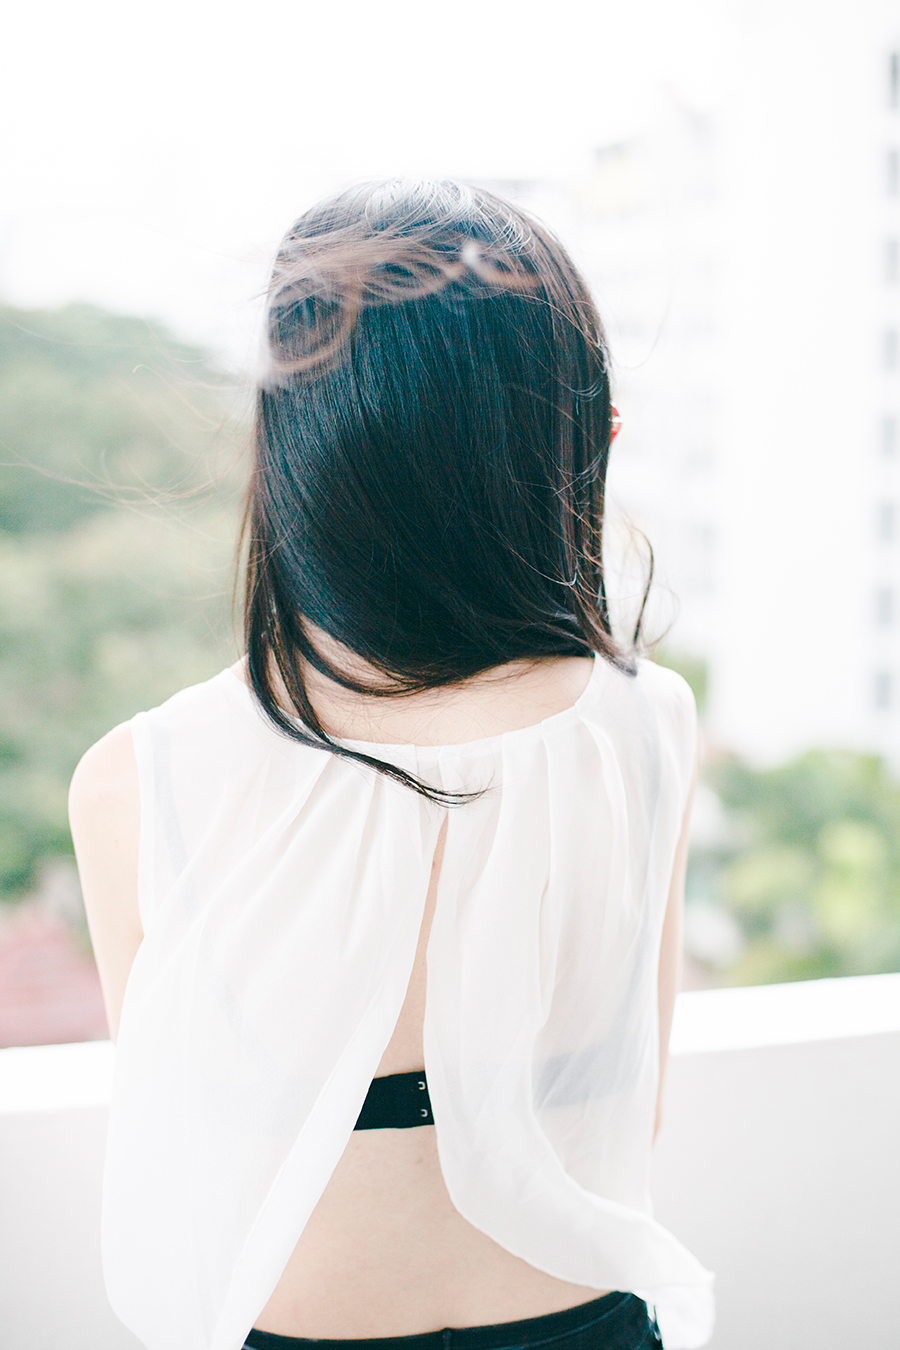 Monochrome outfit: Dresslink backless white chiffon top, Uniqlo black bra.